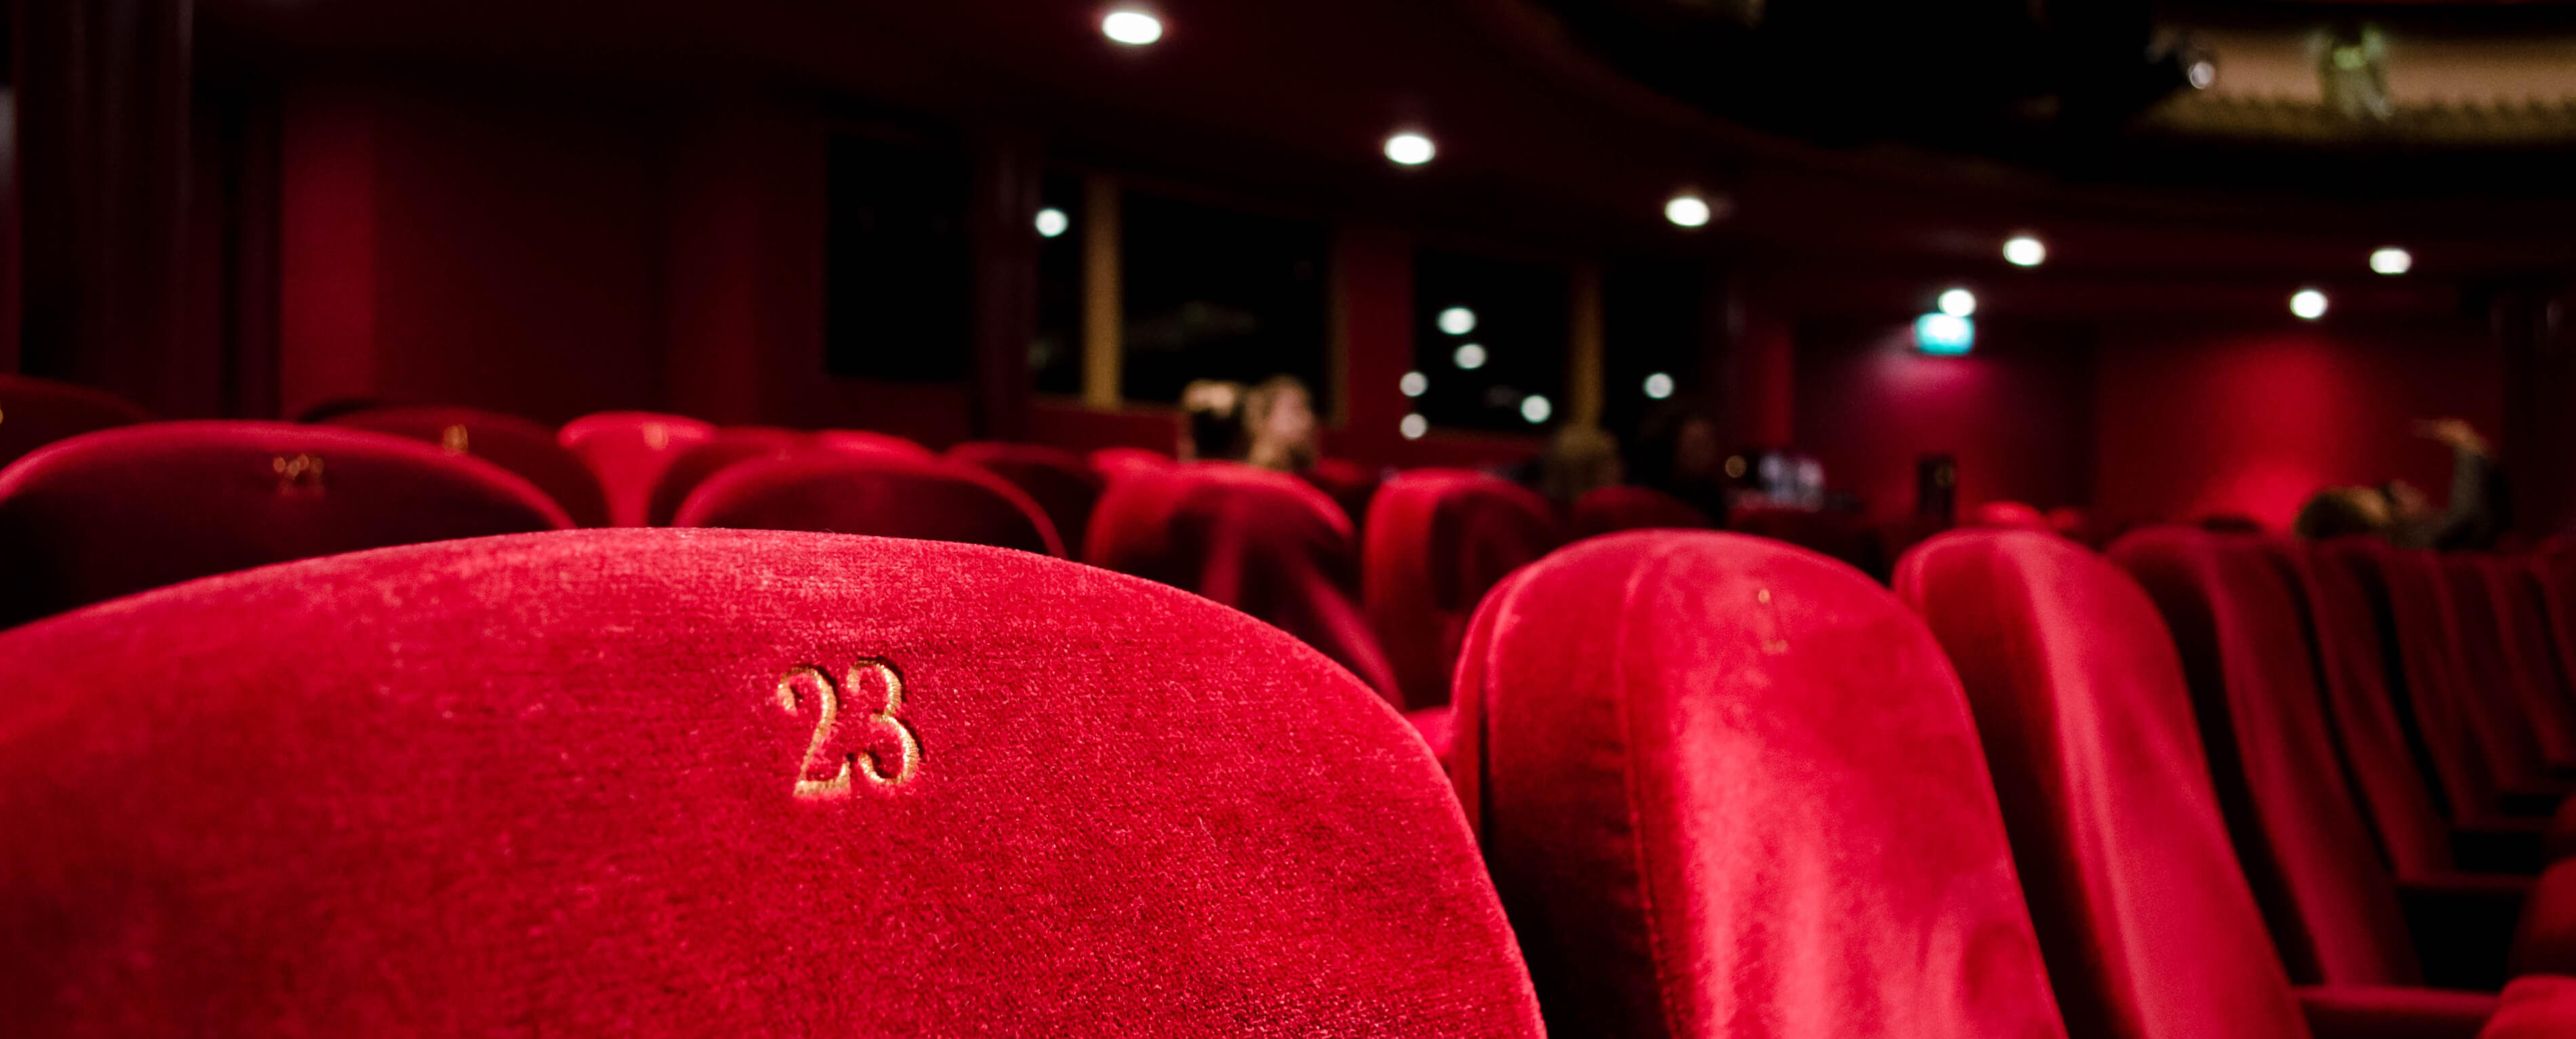 A photograph of theatre seats.